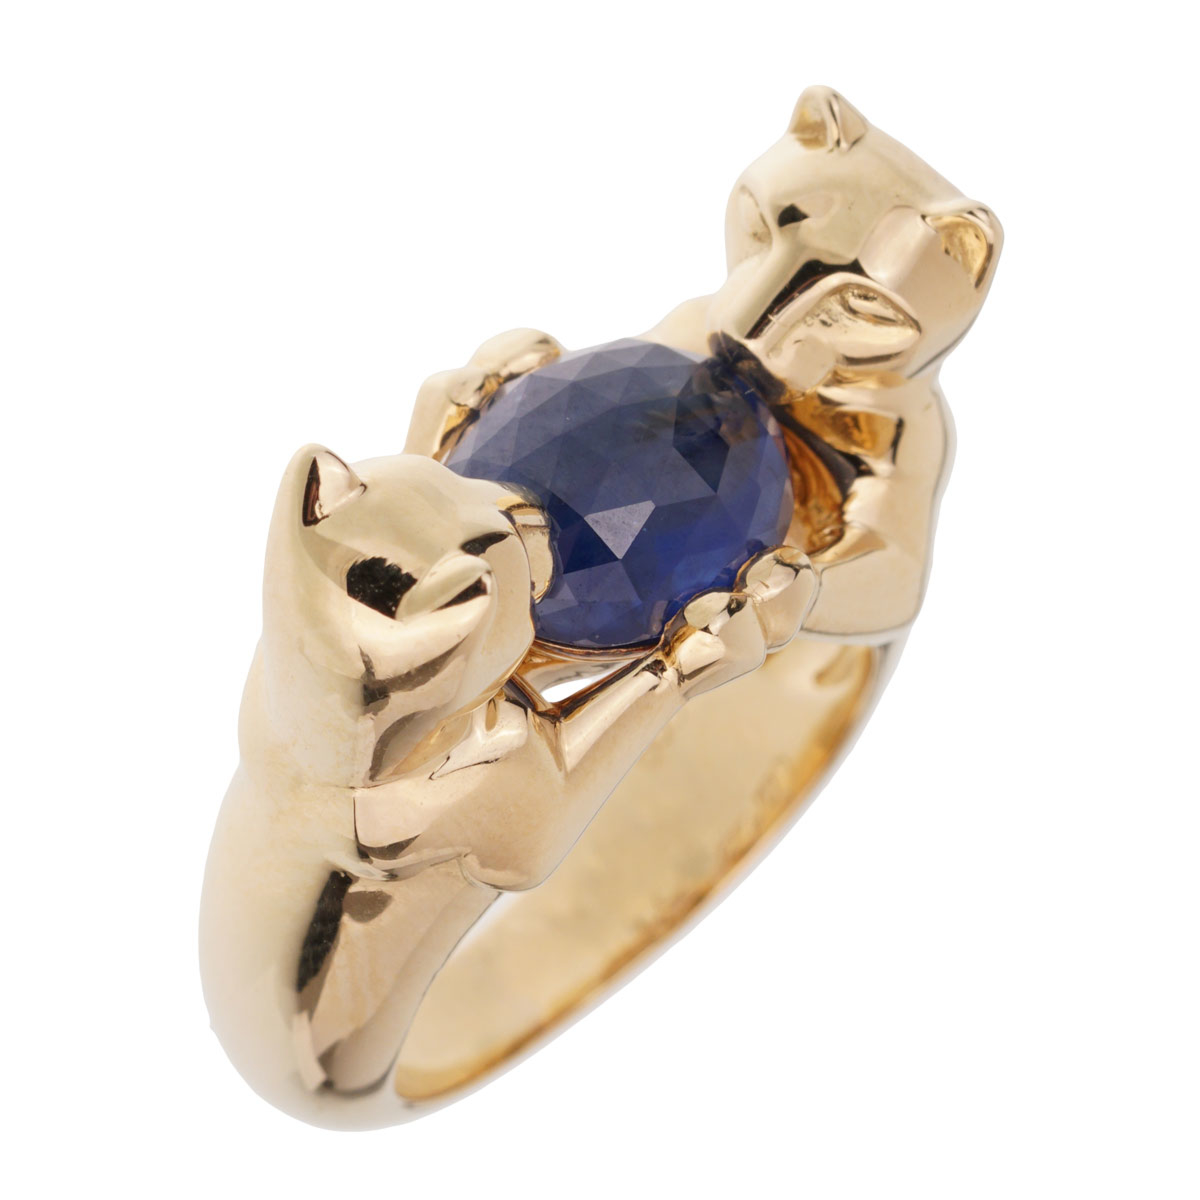 Cartier Double Panthere Sapphire Yellow Gold Ring - Cartier Jewelry